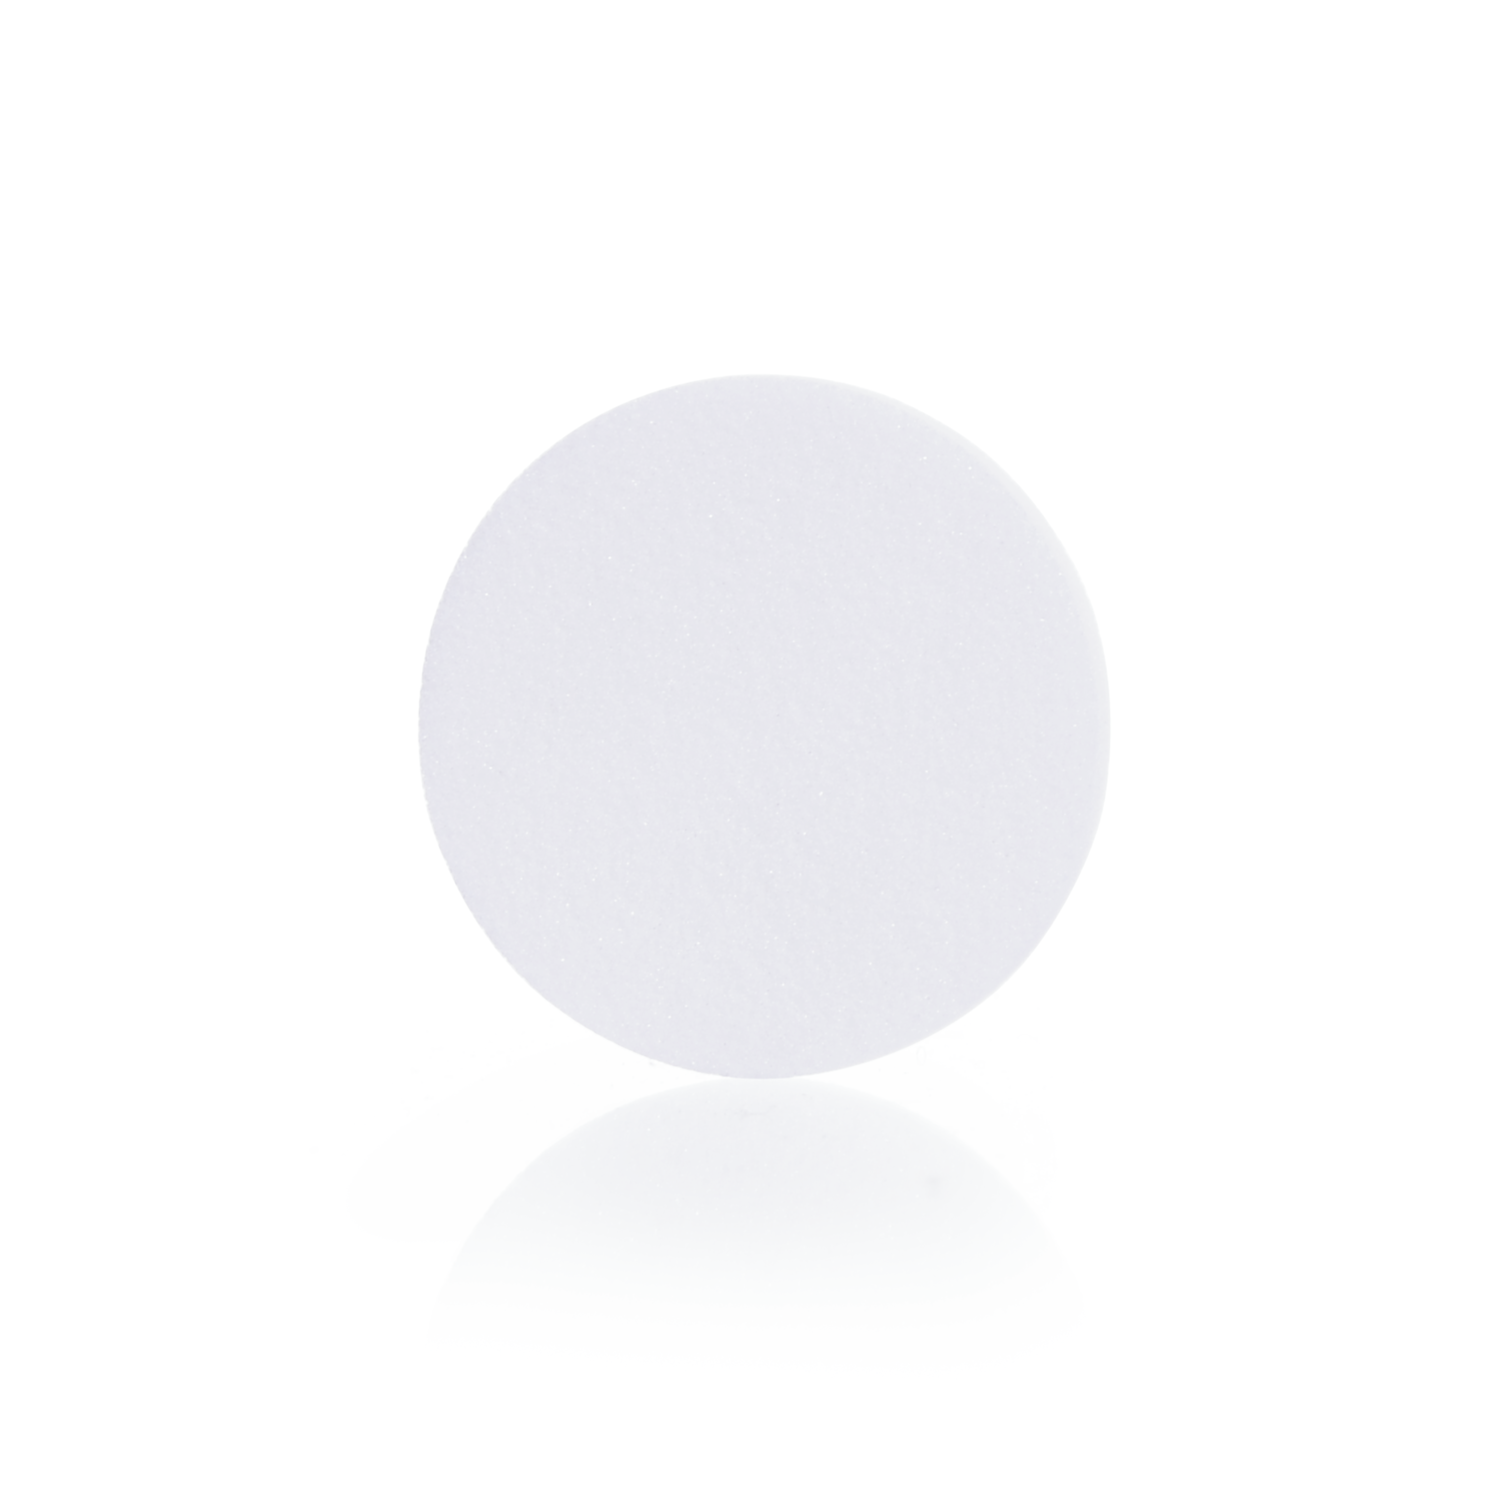 KIMBLE® Fritted Disc, 60 mm, 40-60 µm